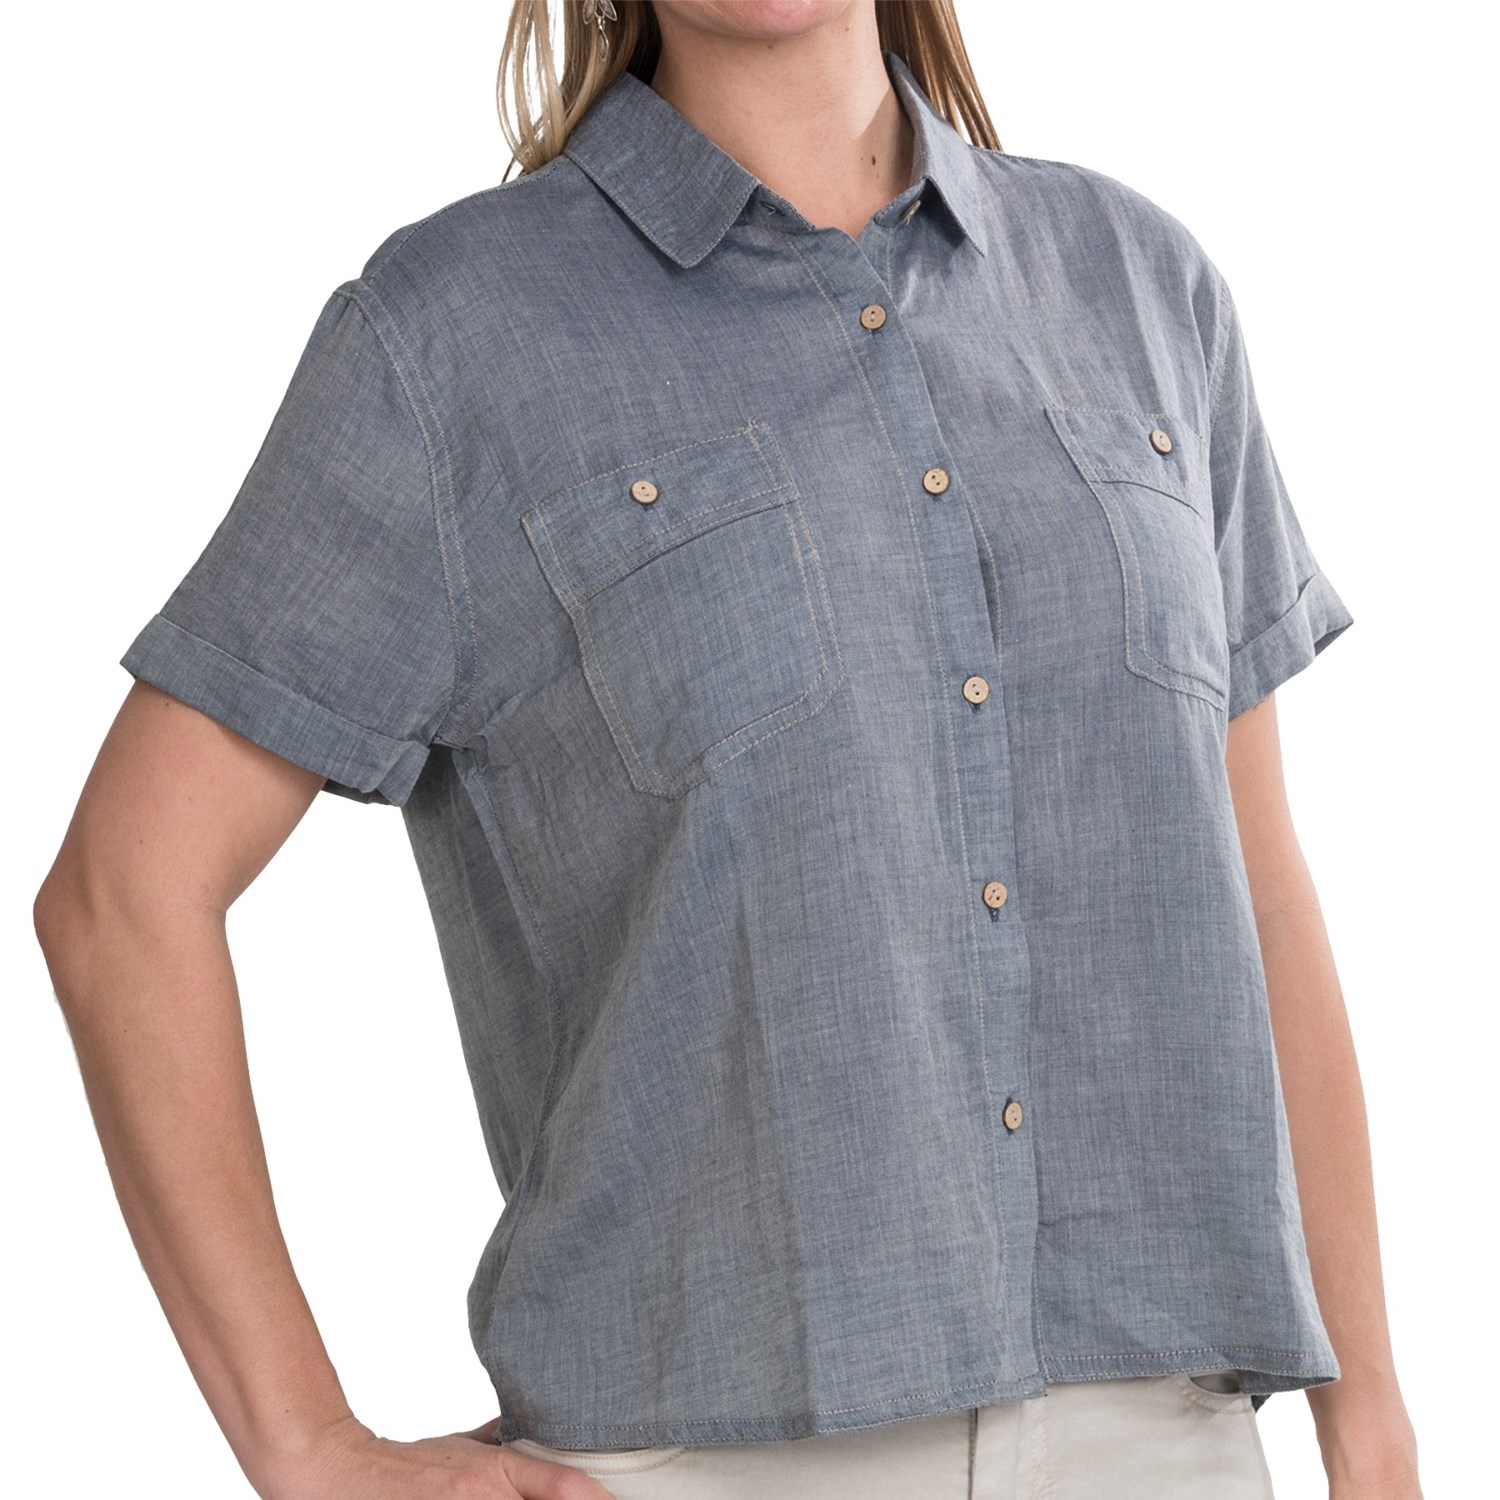 Gramicci keri chambray shirt for women 6824a save 83 for Short sleeve chambray shirt women